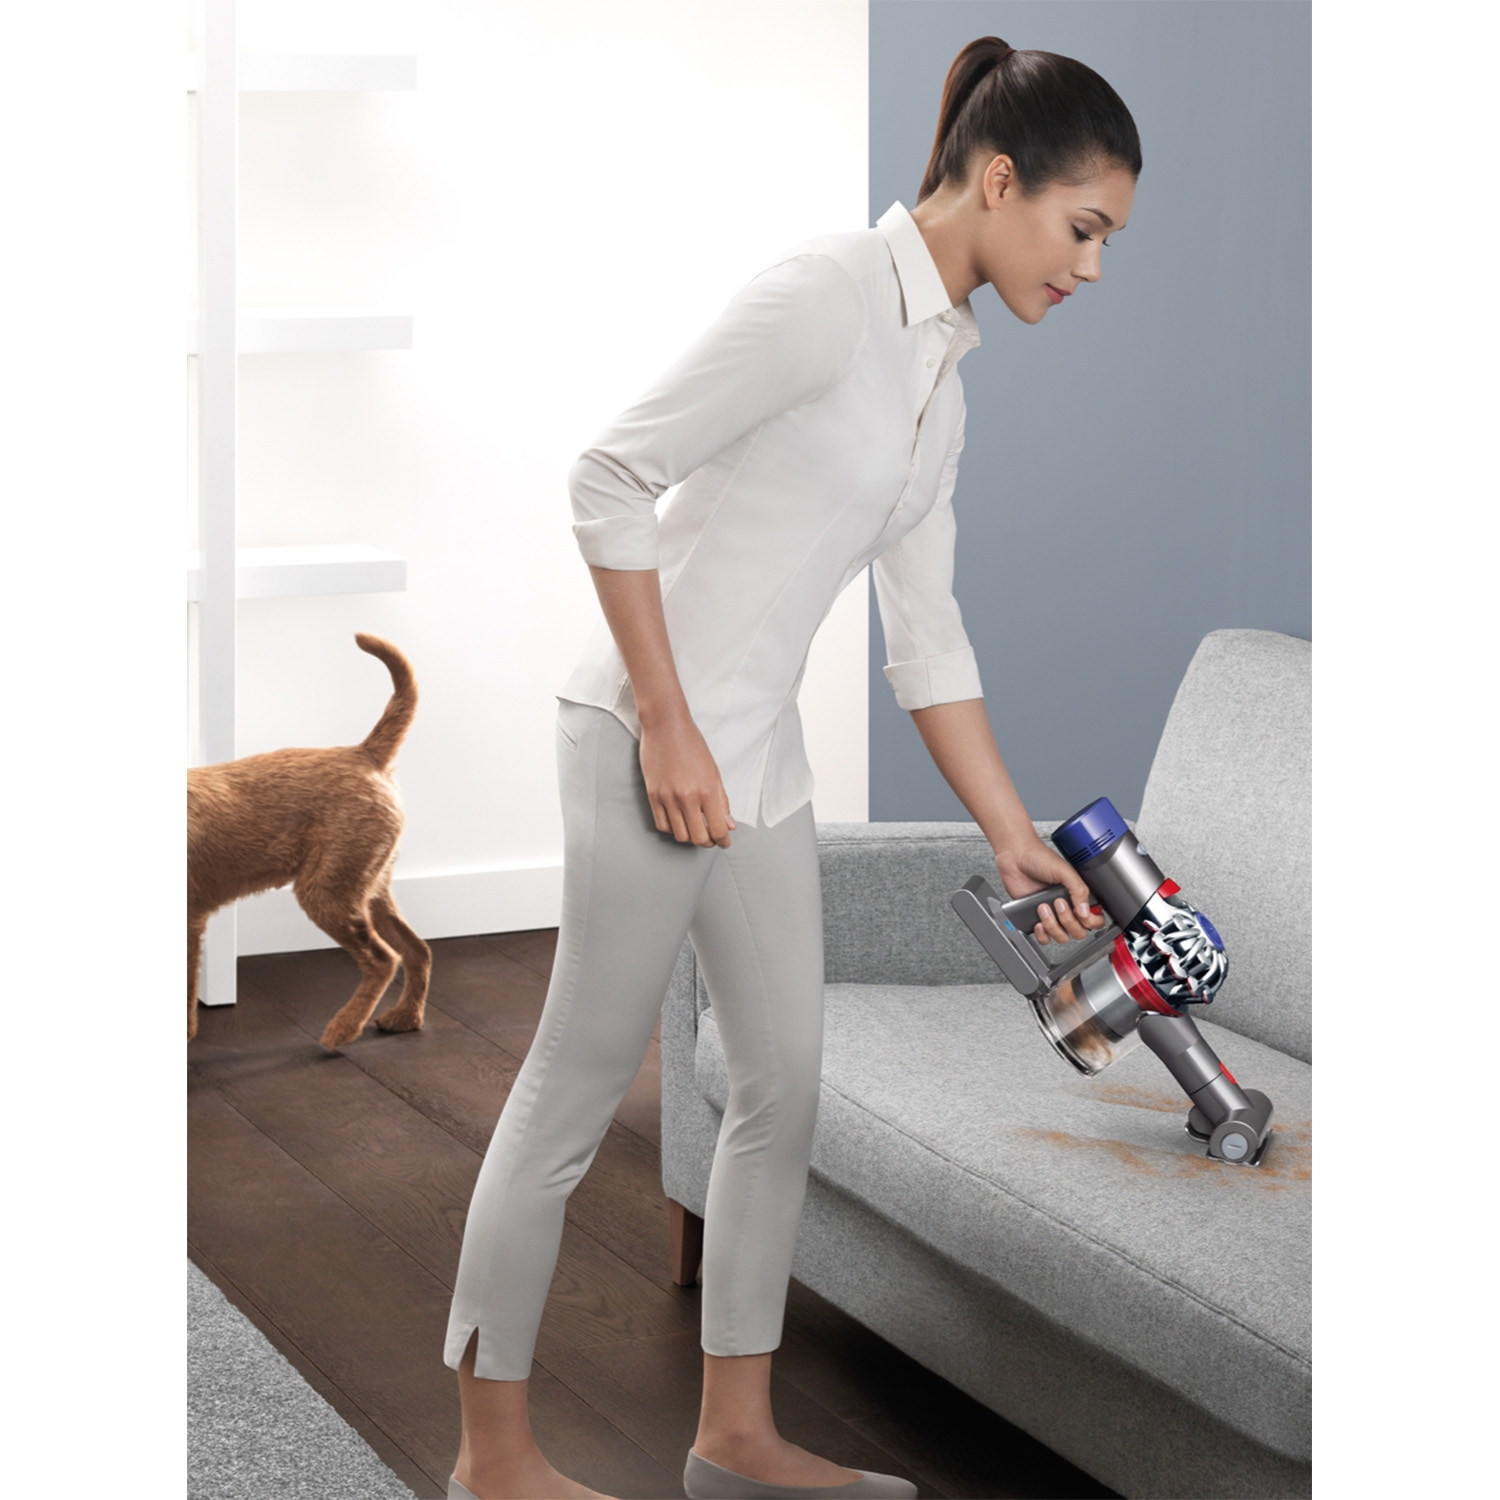 Dyson V7ANIMALPLUS Cordless Vacuum Cleaner - 30 Minute Run Time - 5